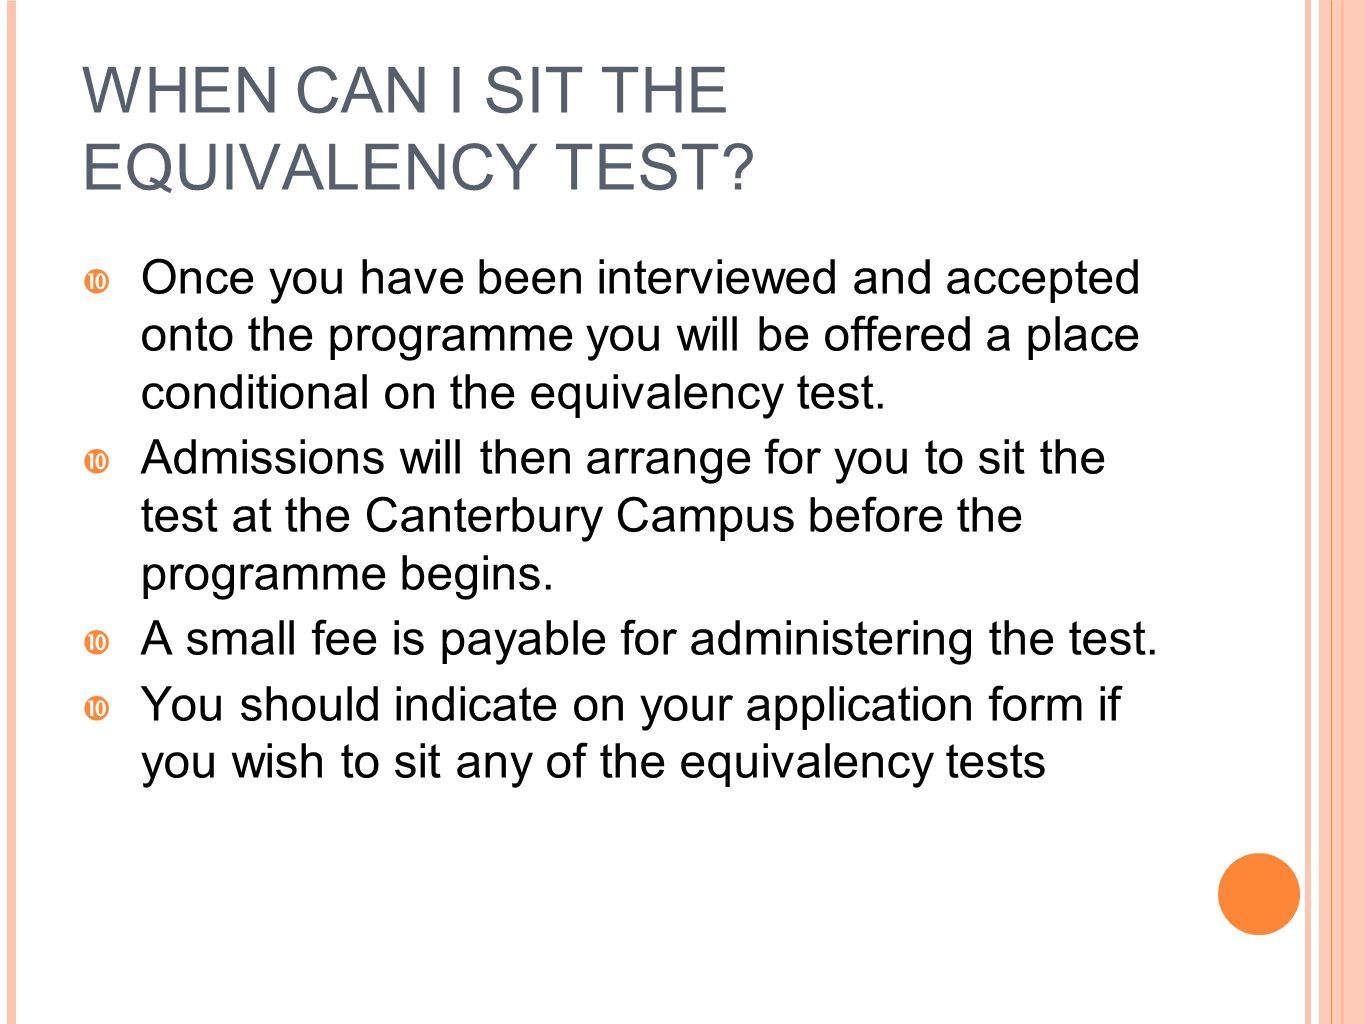 WHEN CAN I SIT THE EQUIVALENCY TEST